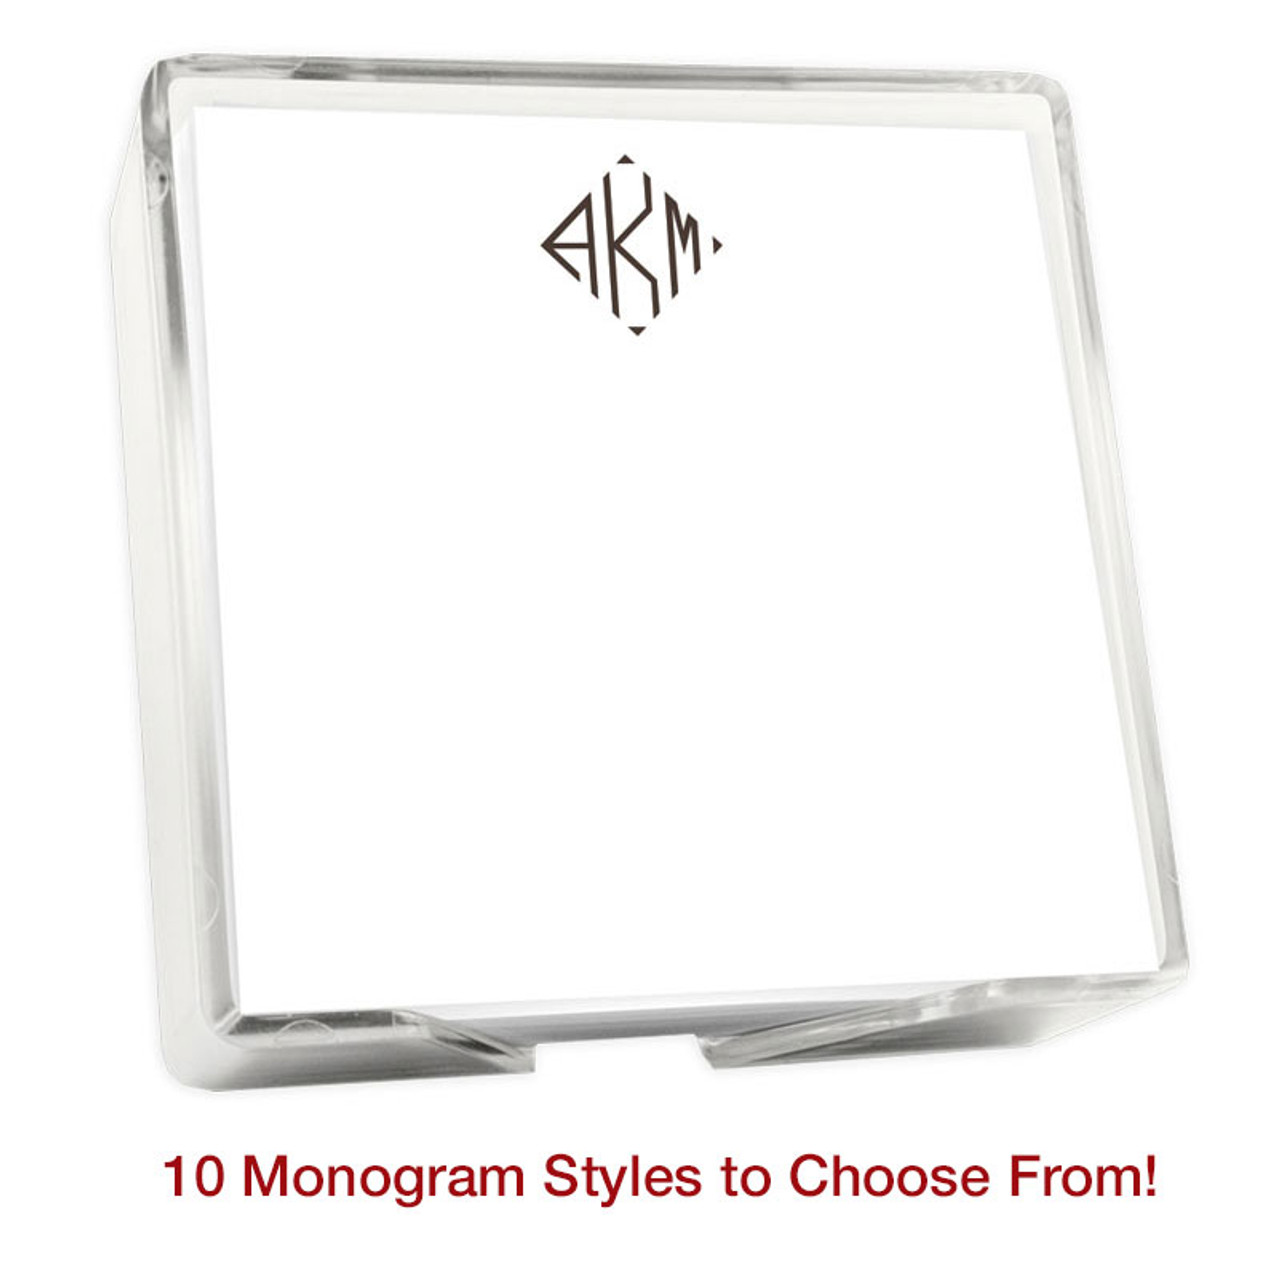 "Del Mar Monogram Memo Square Notepads with Holder - 275 Sheets - 5"" x 5"""